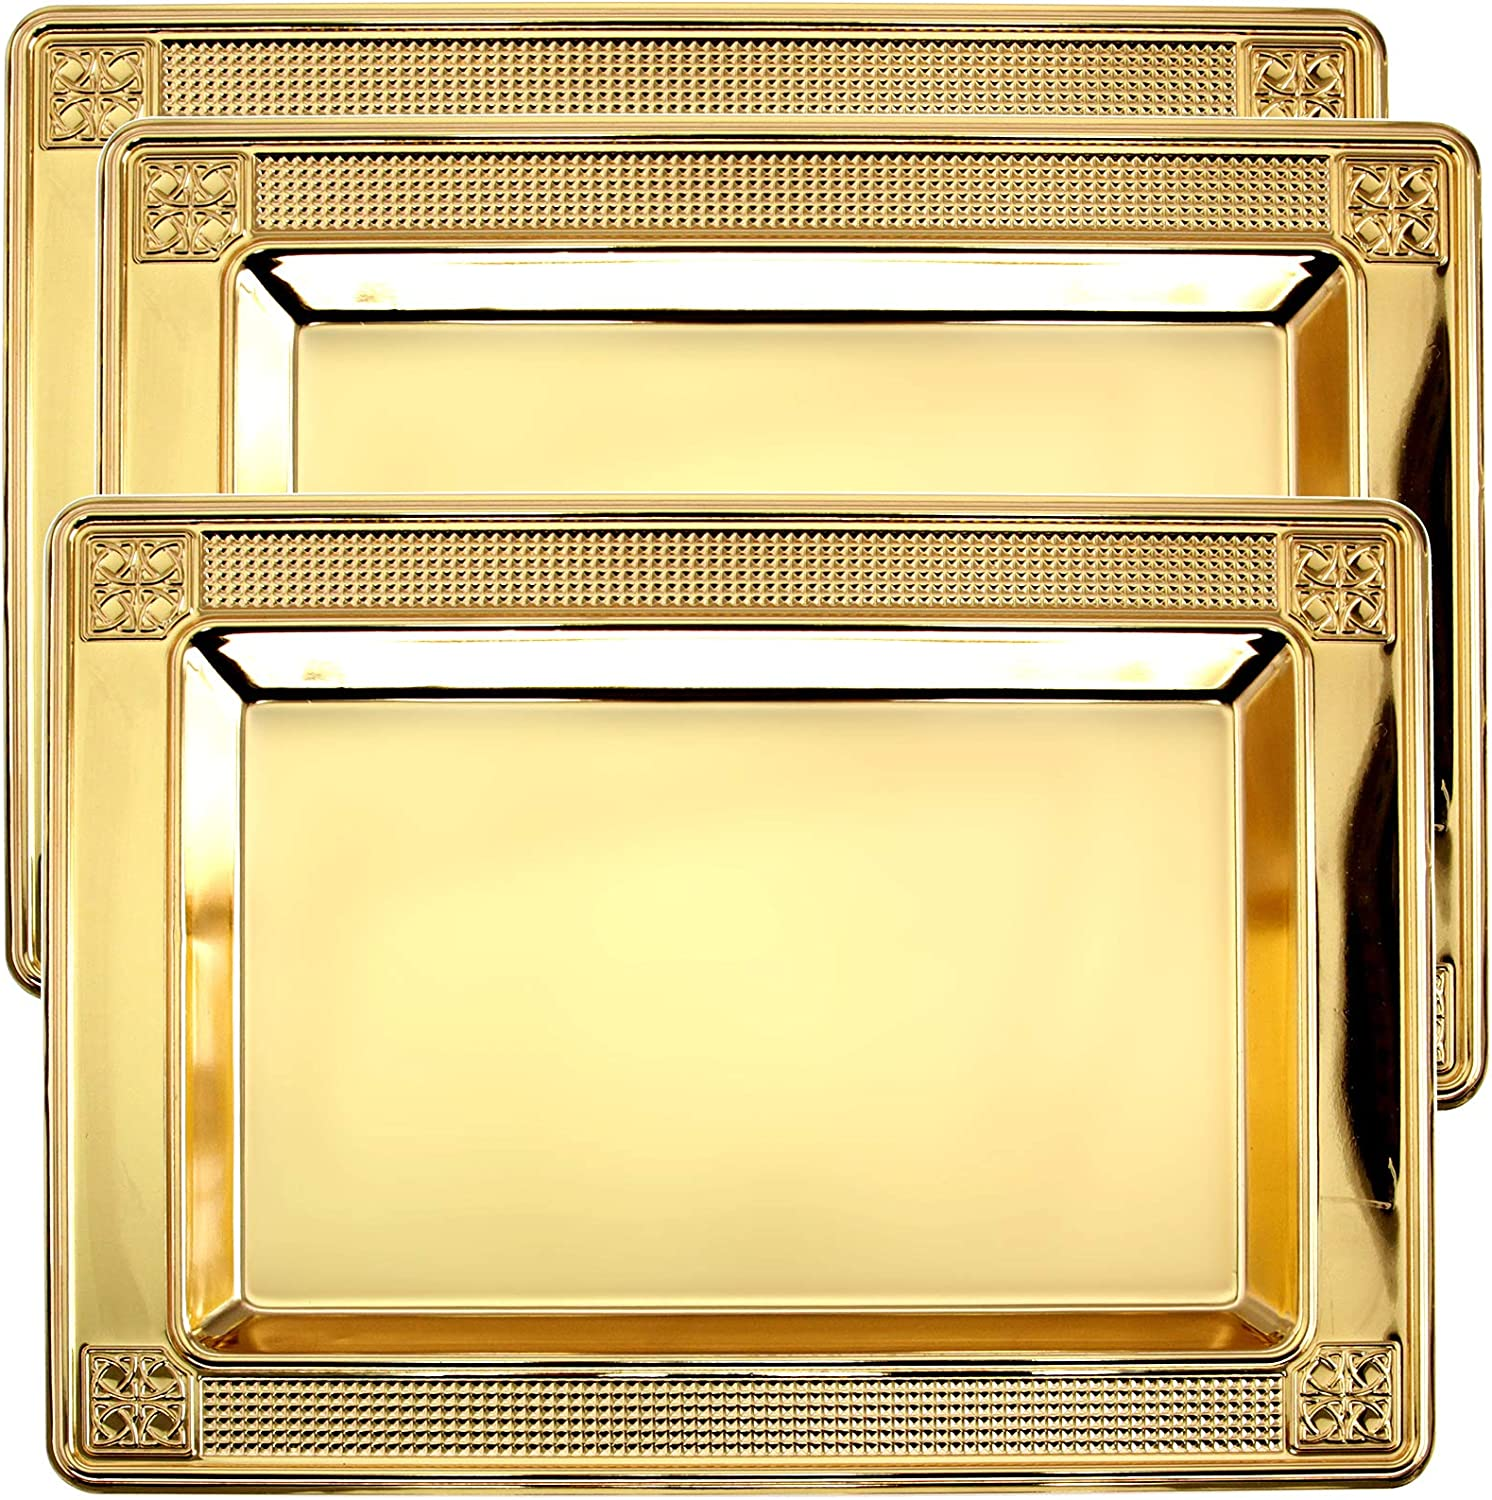 Maro Megastore (Pack of 3 13.9 Inch x 10 Inch Rectangular Iron Gold Plated Serving Tray Floral Edge Decorative Party Birthday Wedding Dessert Buffet Wine Candle Decor Platter Plate Base Dish CC-551